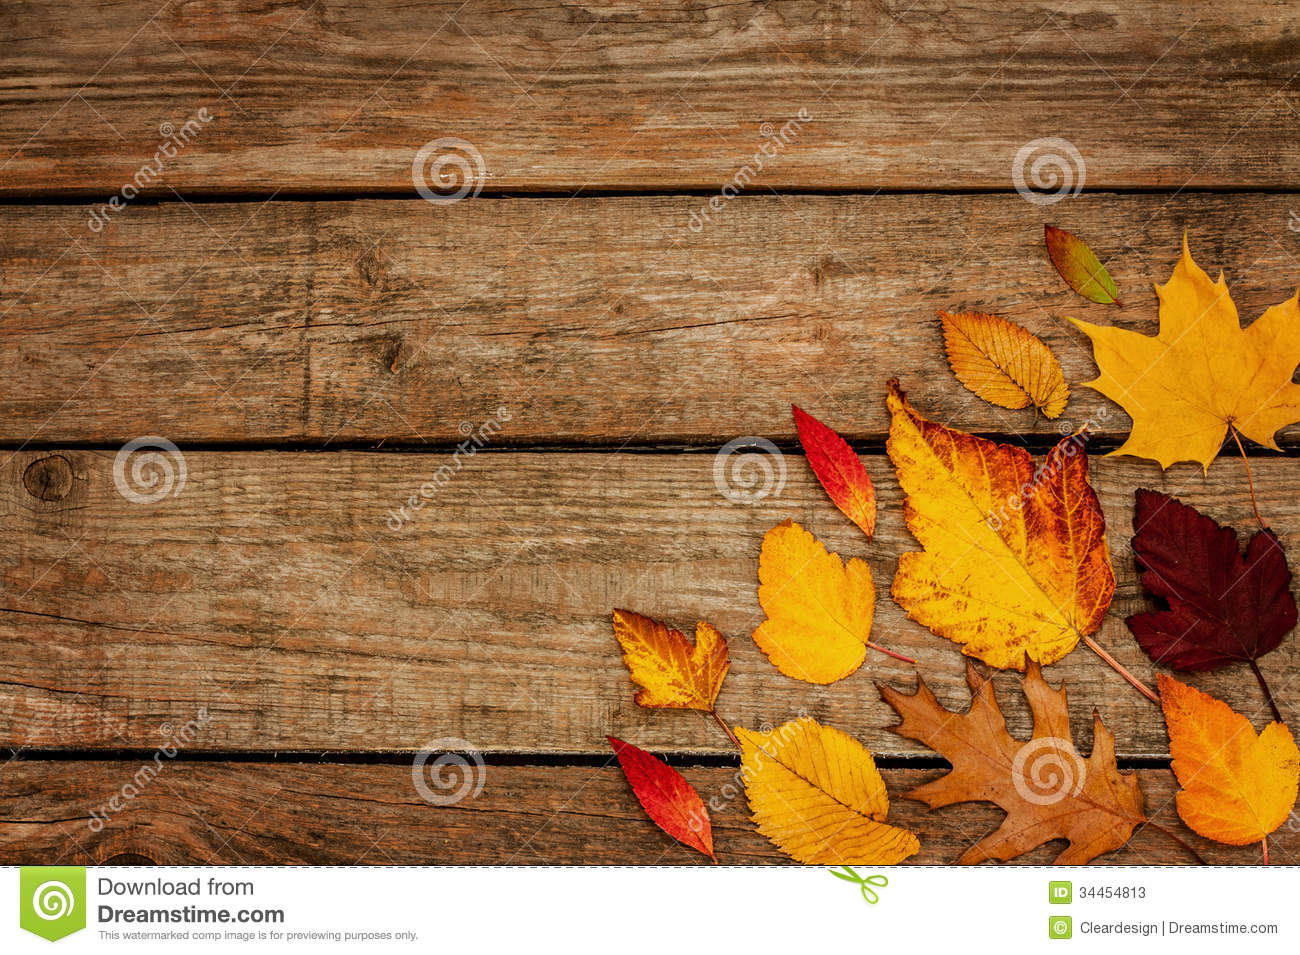 Fall Season Wallpaper Free Autumn Background Different Shaped Leaves On Wood Stock